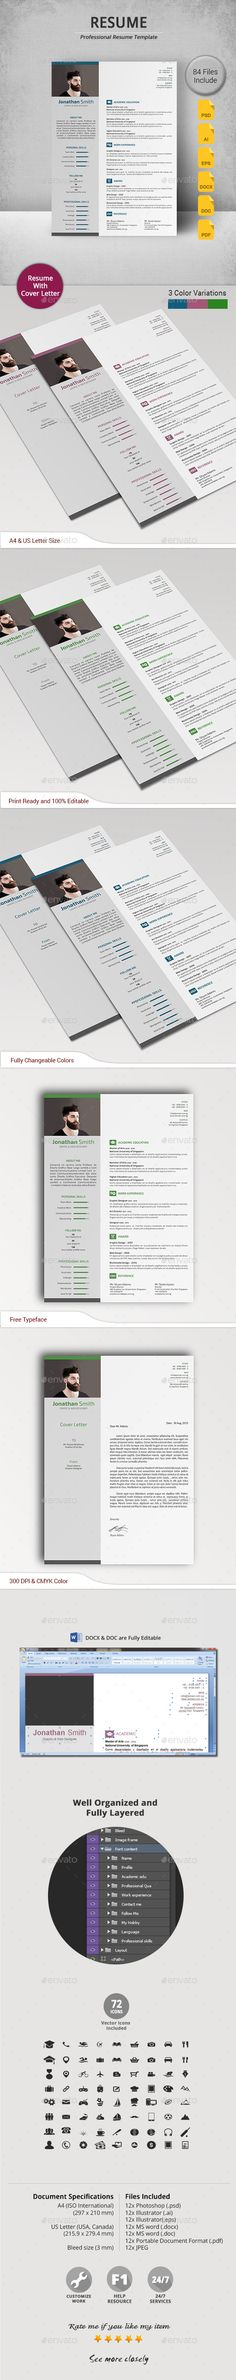 Resume Word Resume template download, Modern resume template and - resume form download